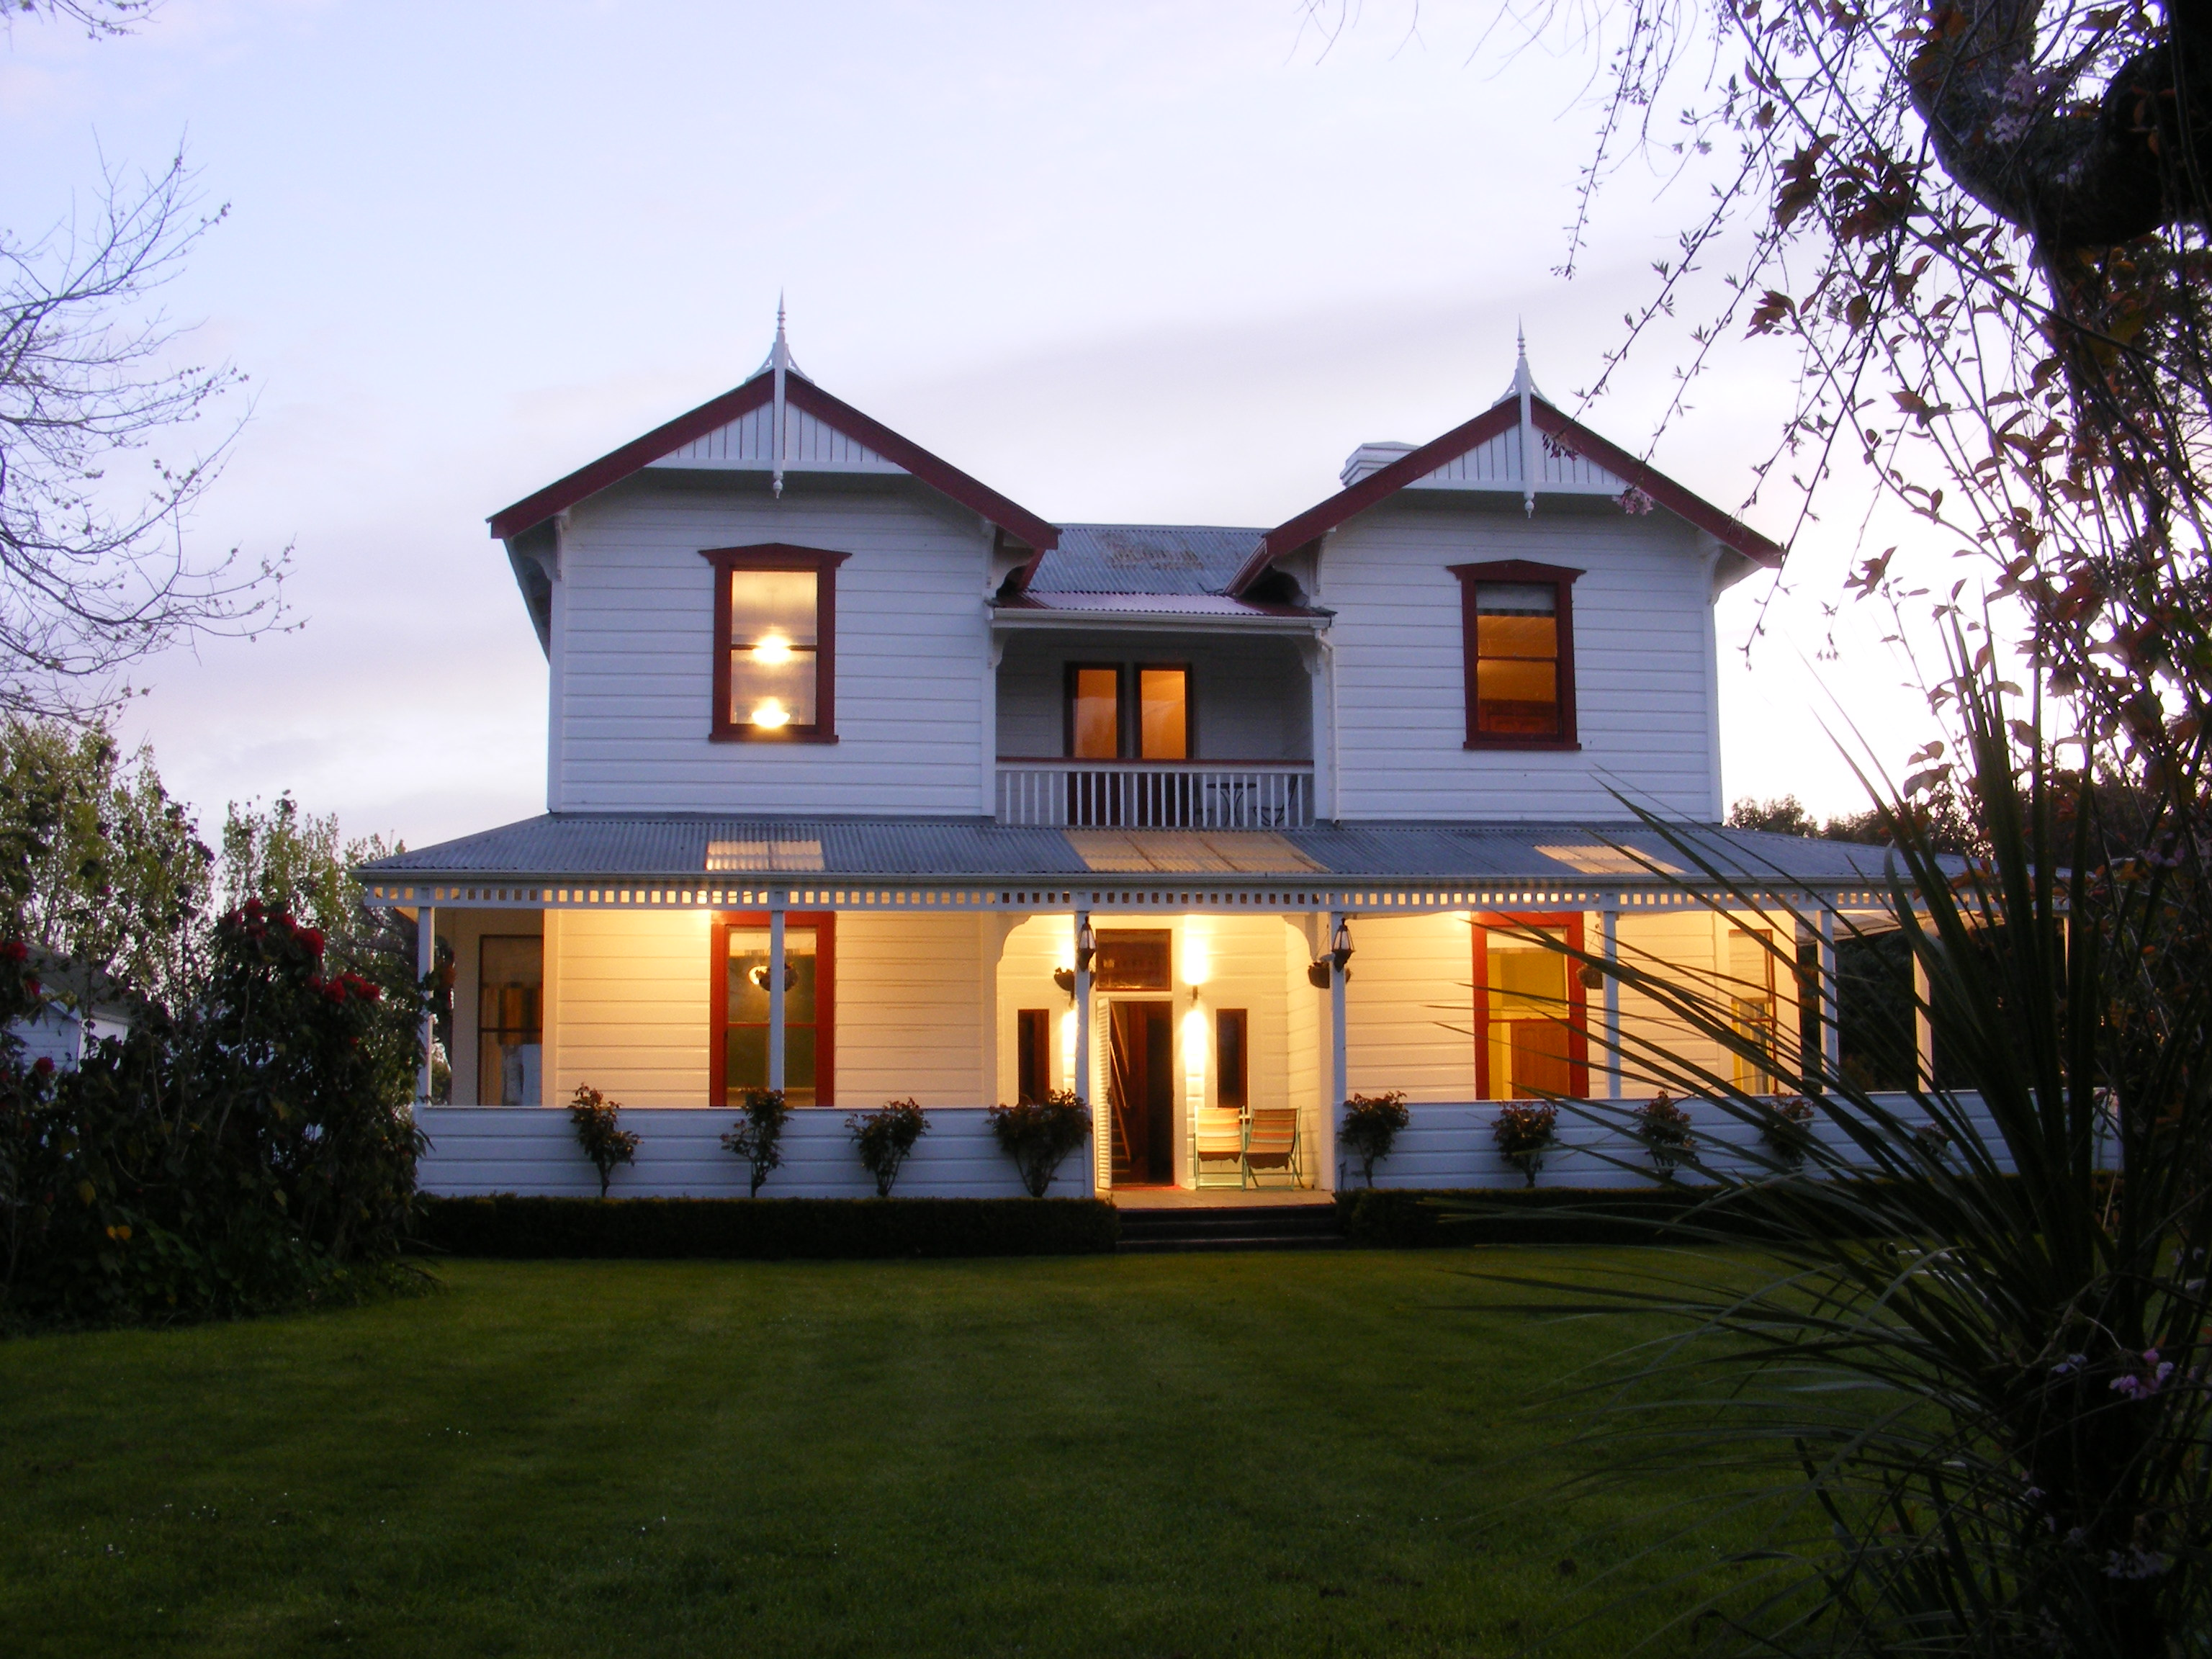 House from Front Lawn in Evening